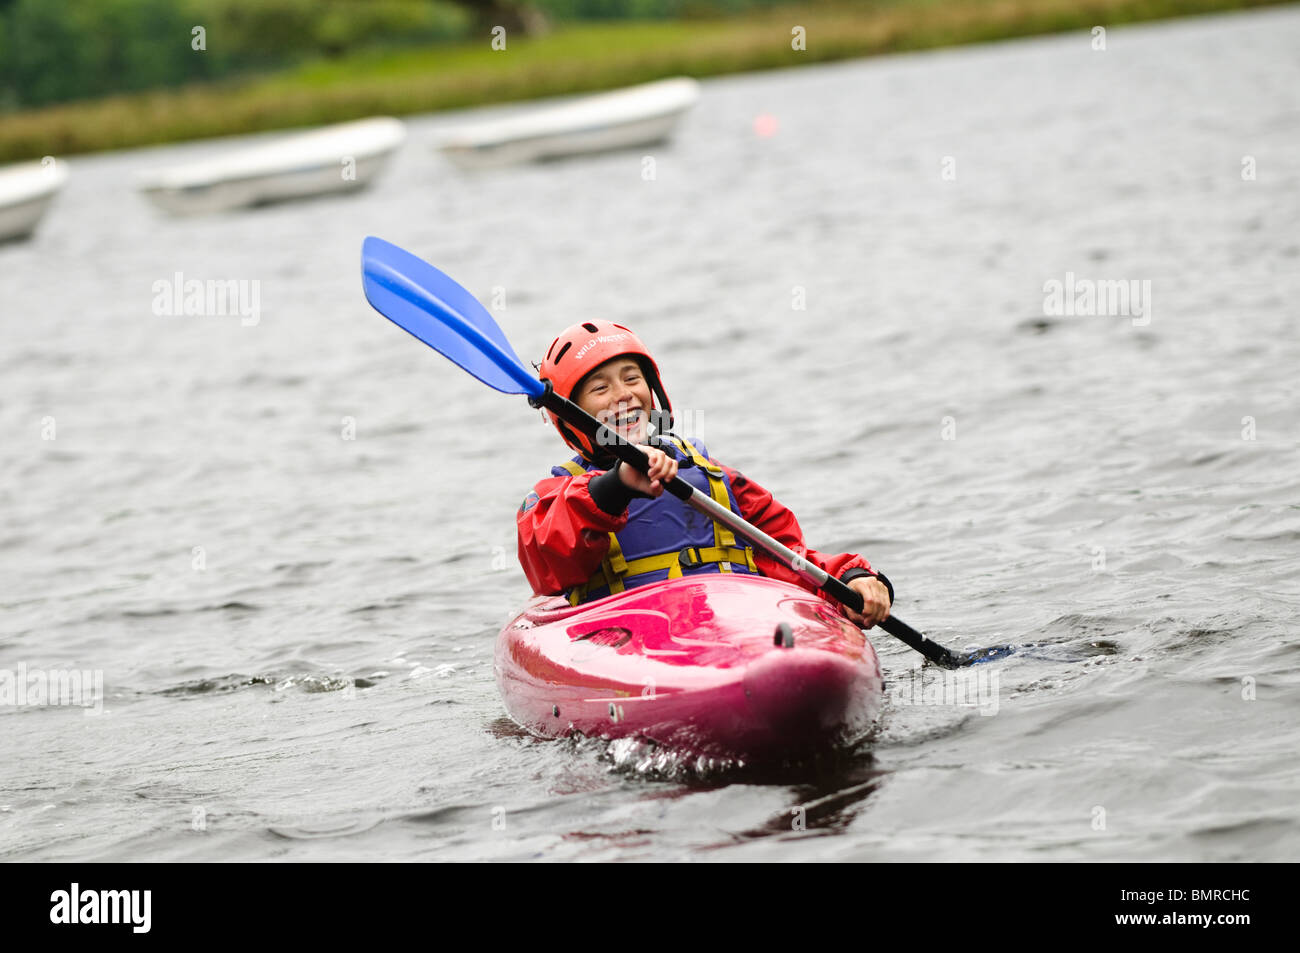 A boy Kayaking on Lake as part of a course organised by Canolfan Yr Urdd outward bound adventure centre Glanllyn - Stock Image